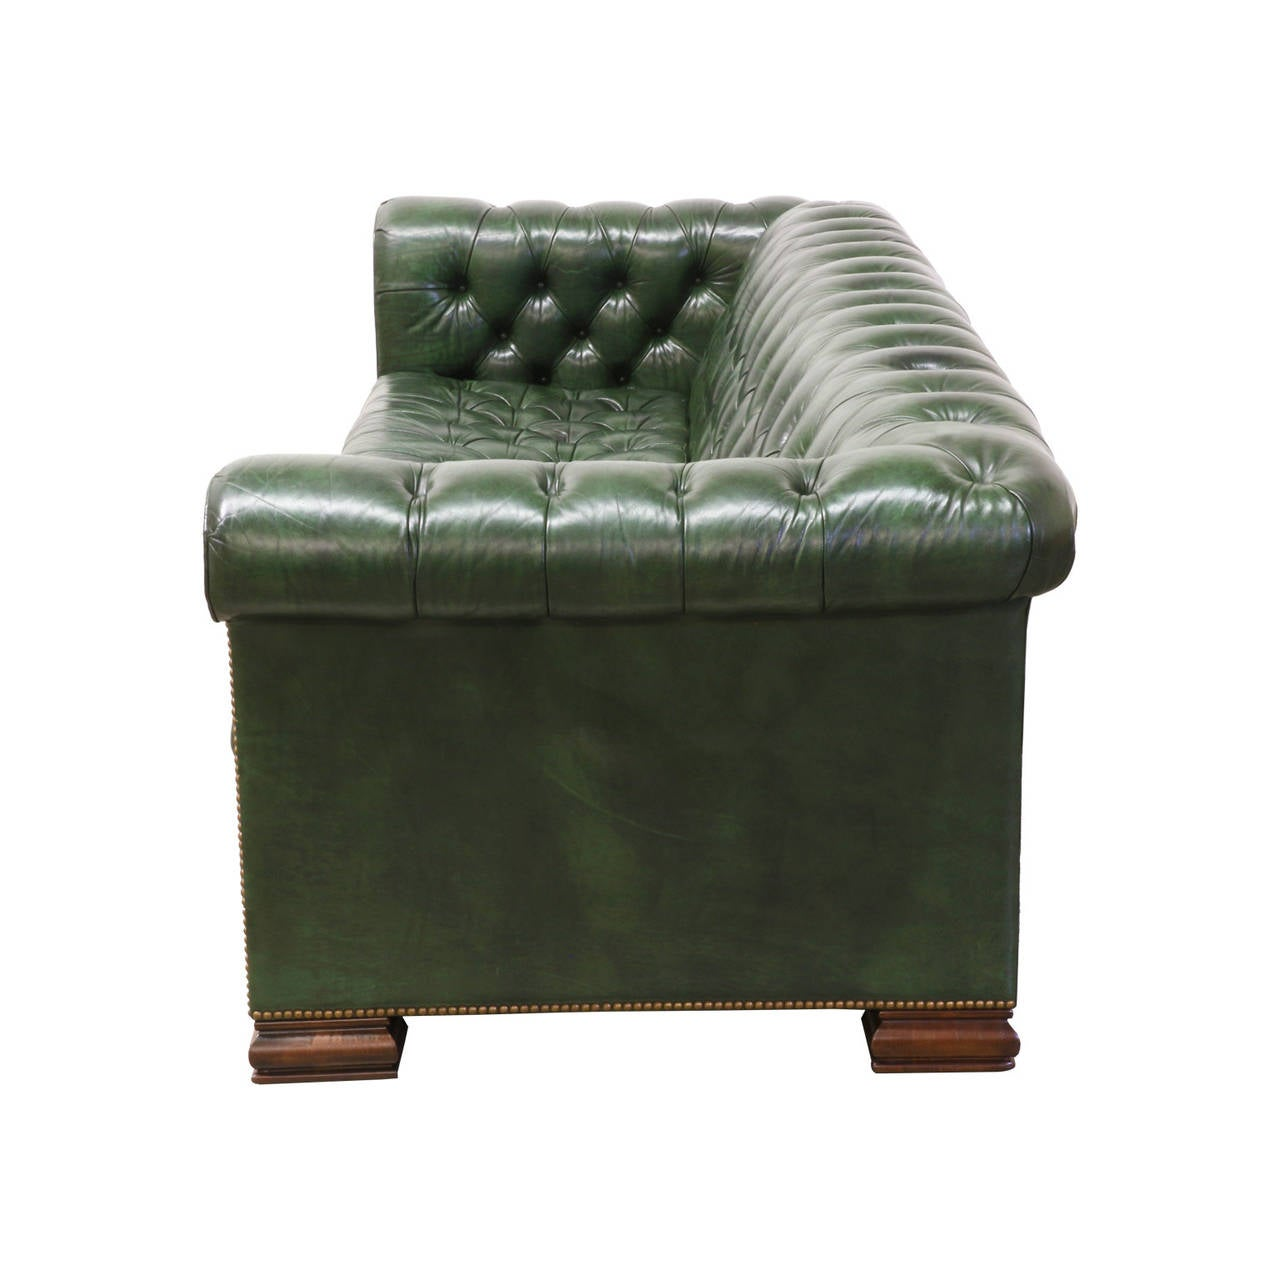 Vintage green leather chesterfield sofa bed at 1stdibs for Decor jewelry chesterfield